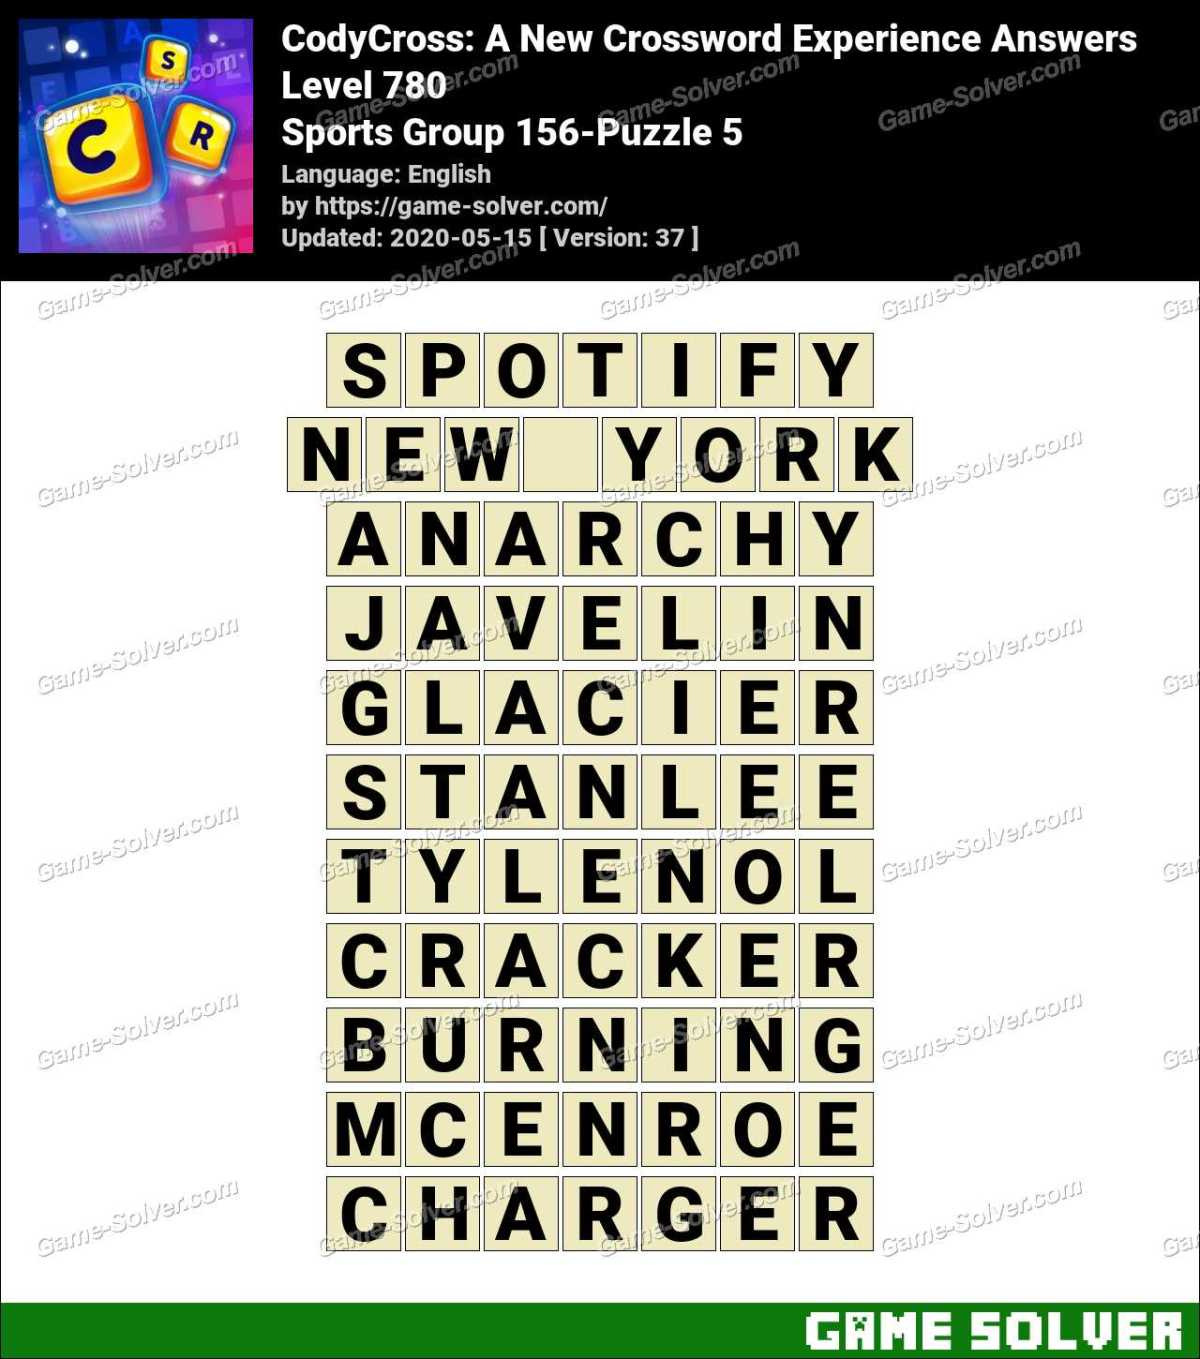 CodyCross Sports Group 156-Puzzle 5 Answers